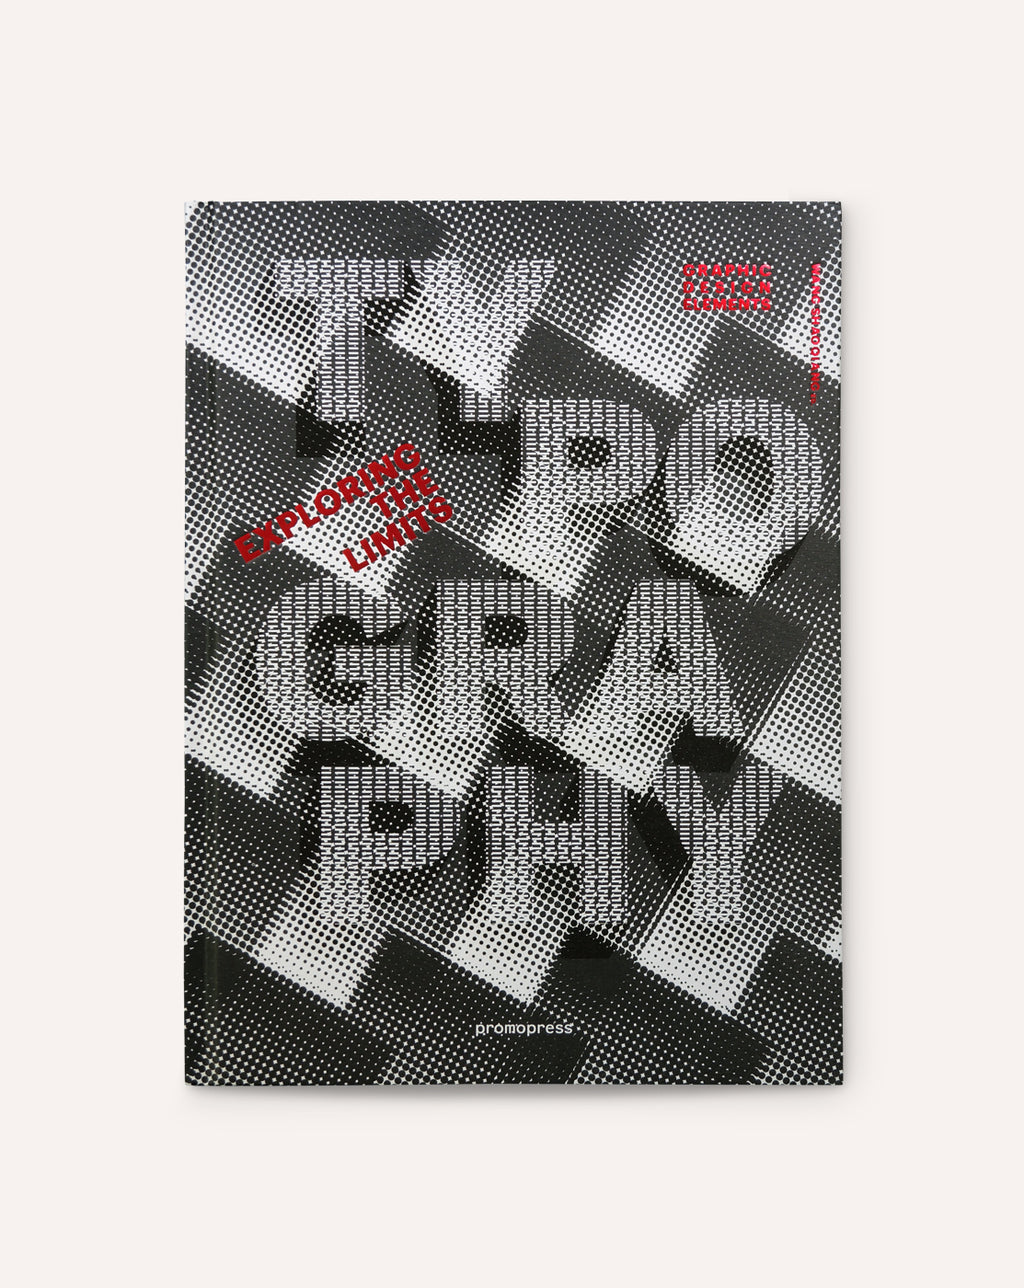 Typography: Exploring the Limits